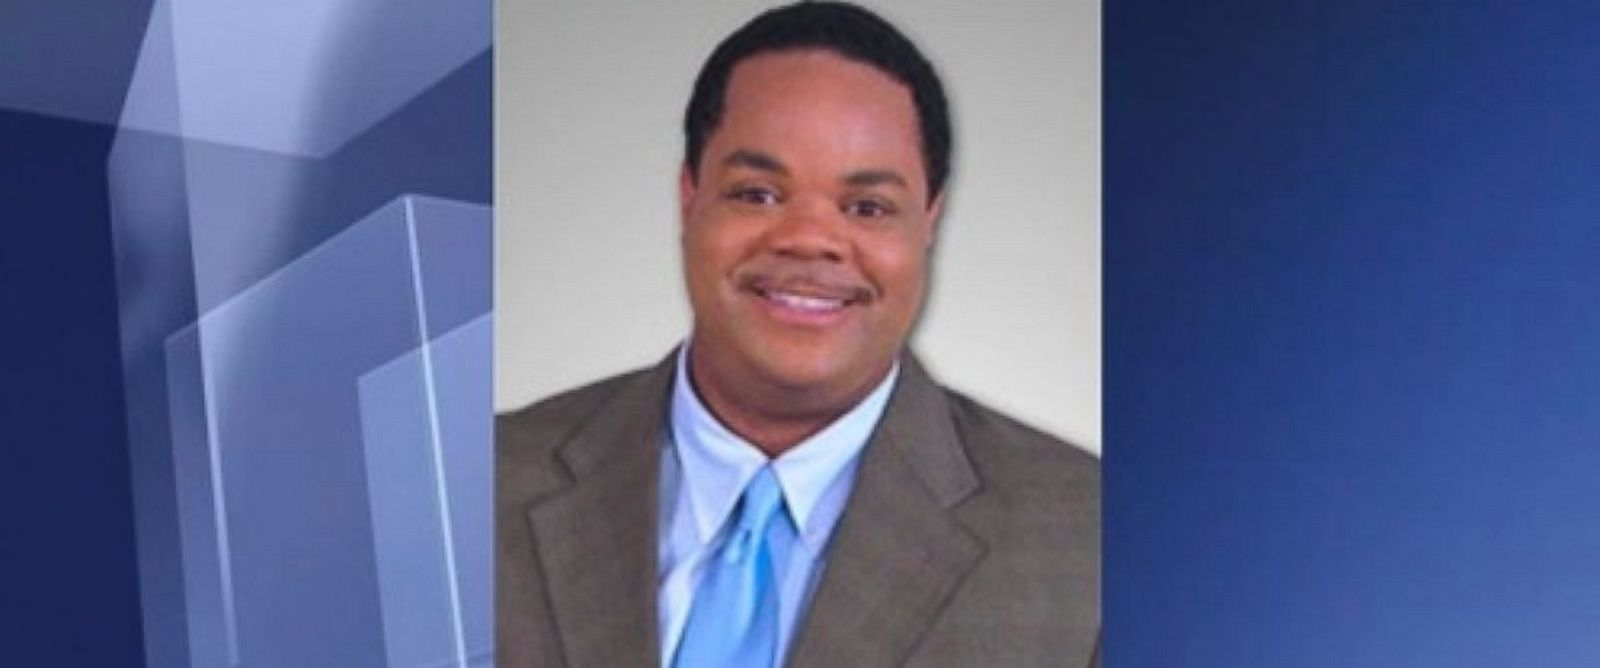 PHOTO: This undated photo provided by WDBJ-TV, shows Vester Lee Flanagan II, who killed WDBJ reporter Alison Parker and cameraman Adam Ward in Moneta, Va., Wednesday, Aug. 26, 2015.